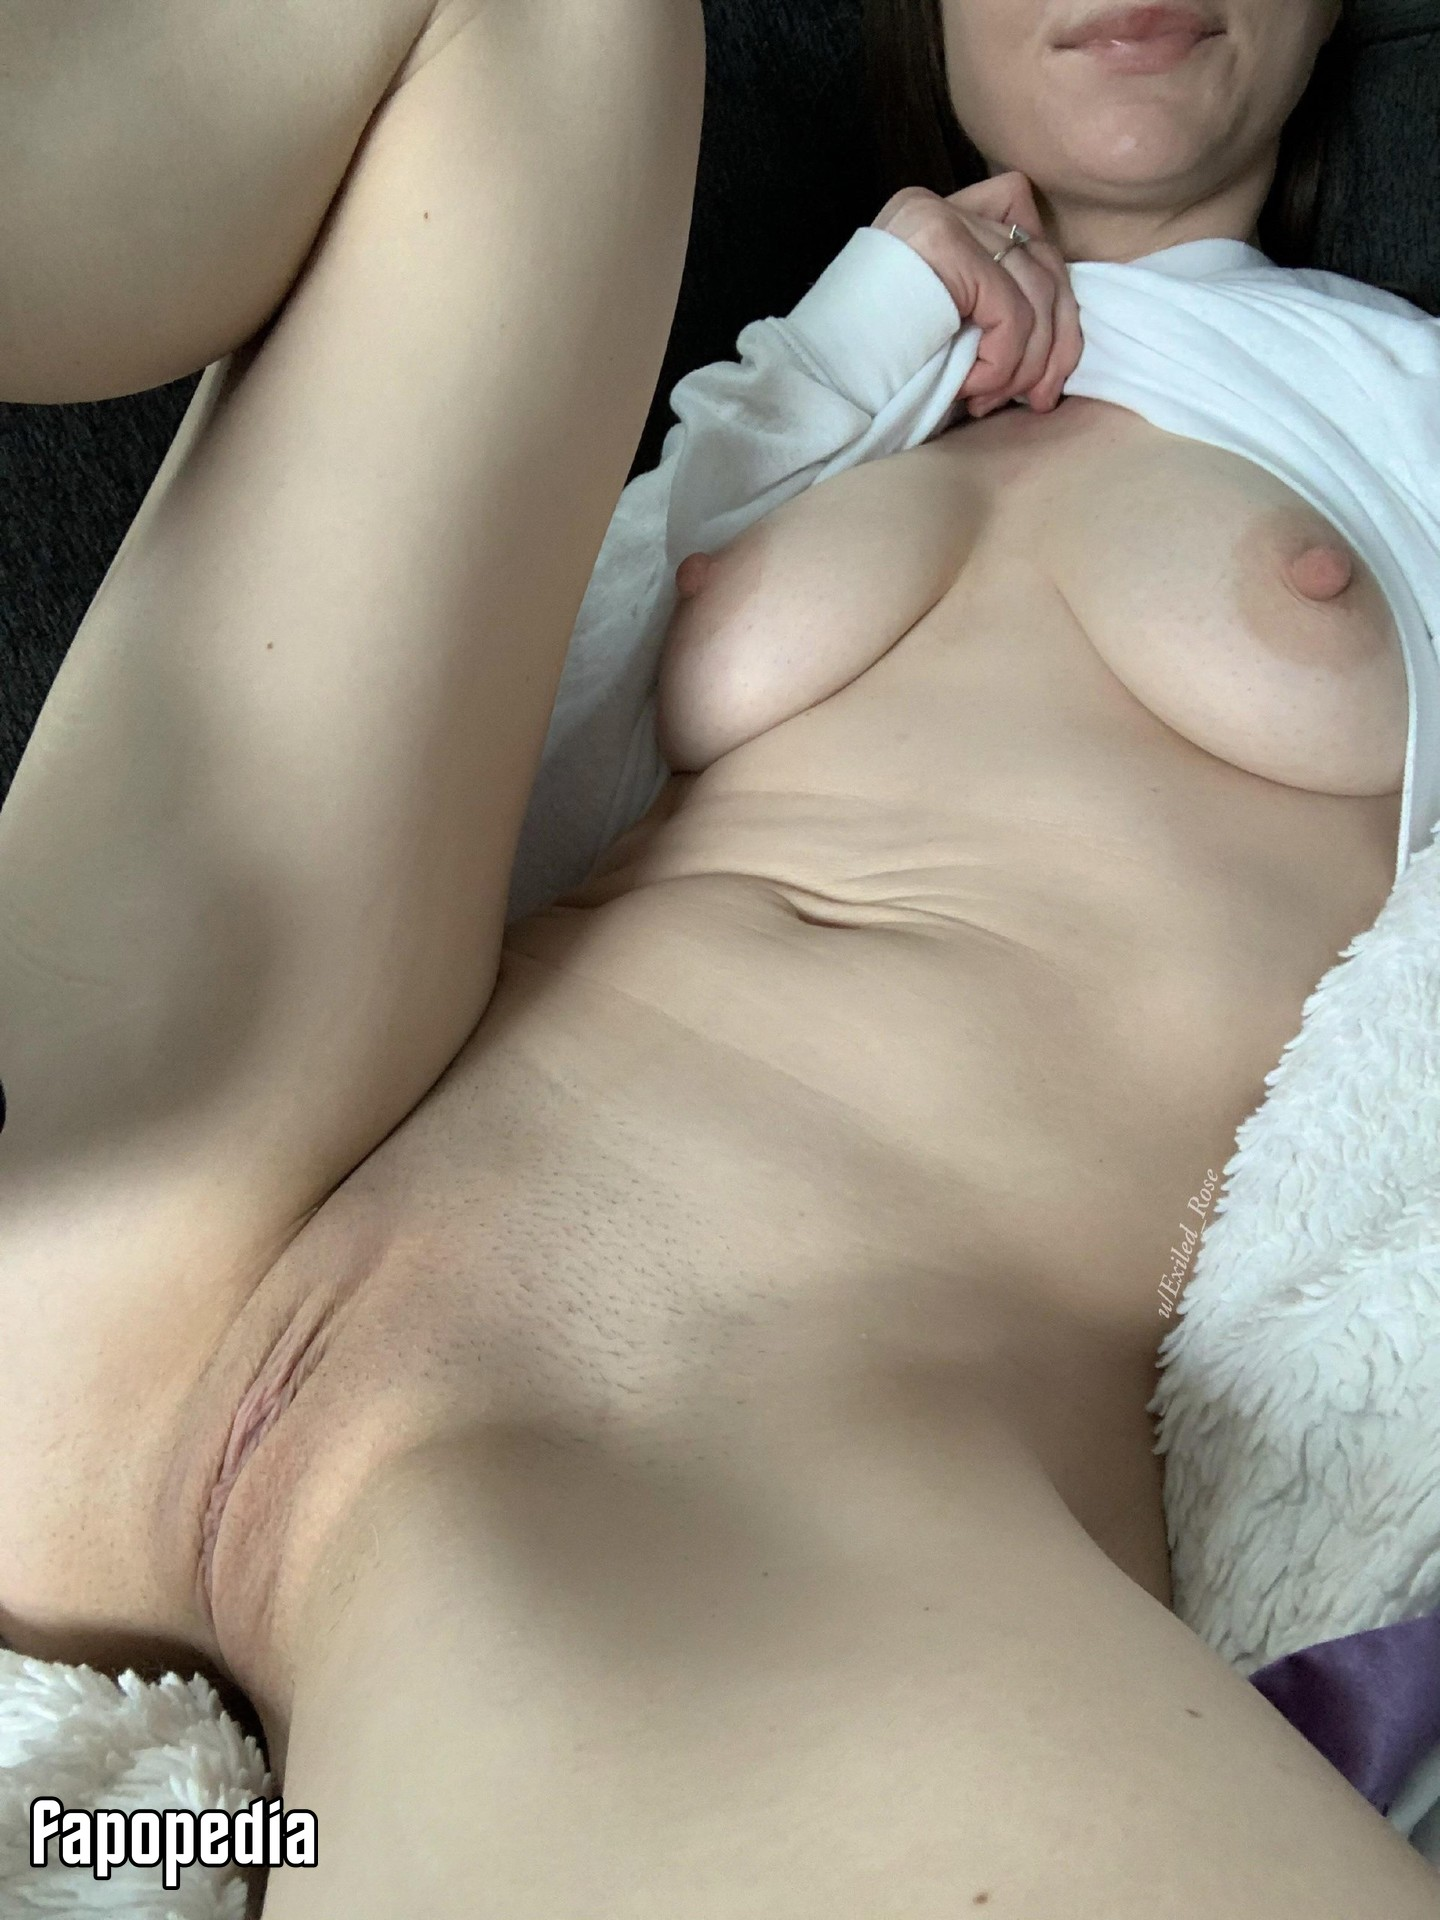 Exiled_Rose Nude Leaks